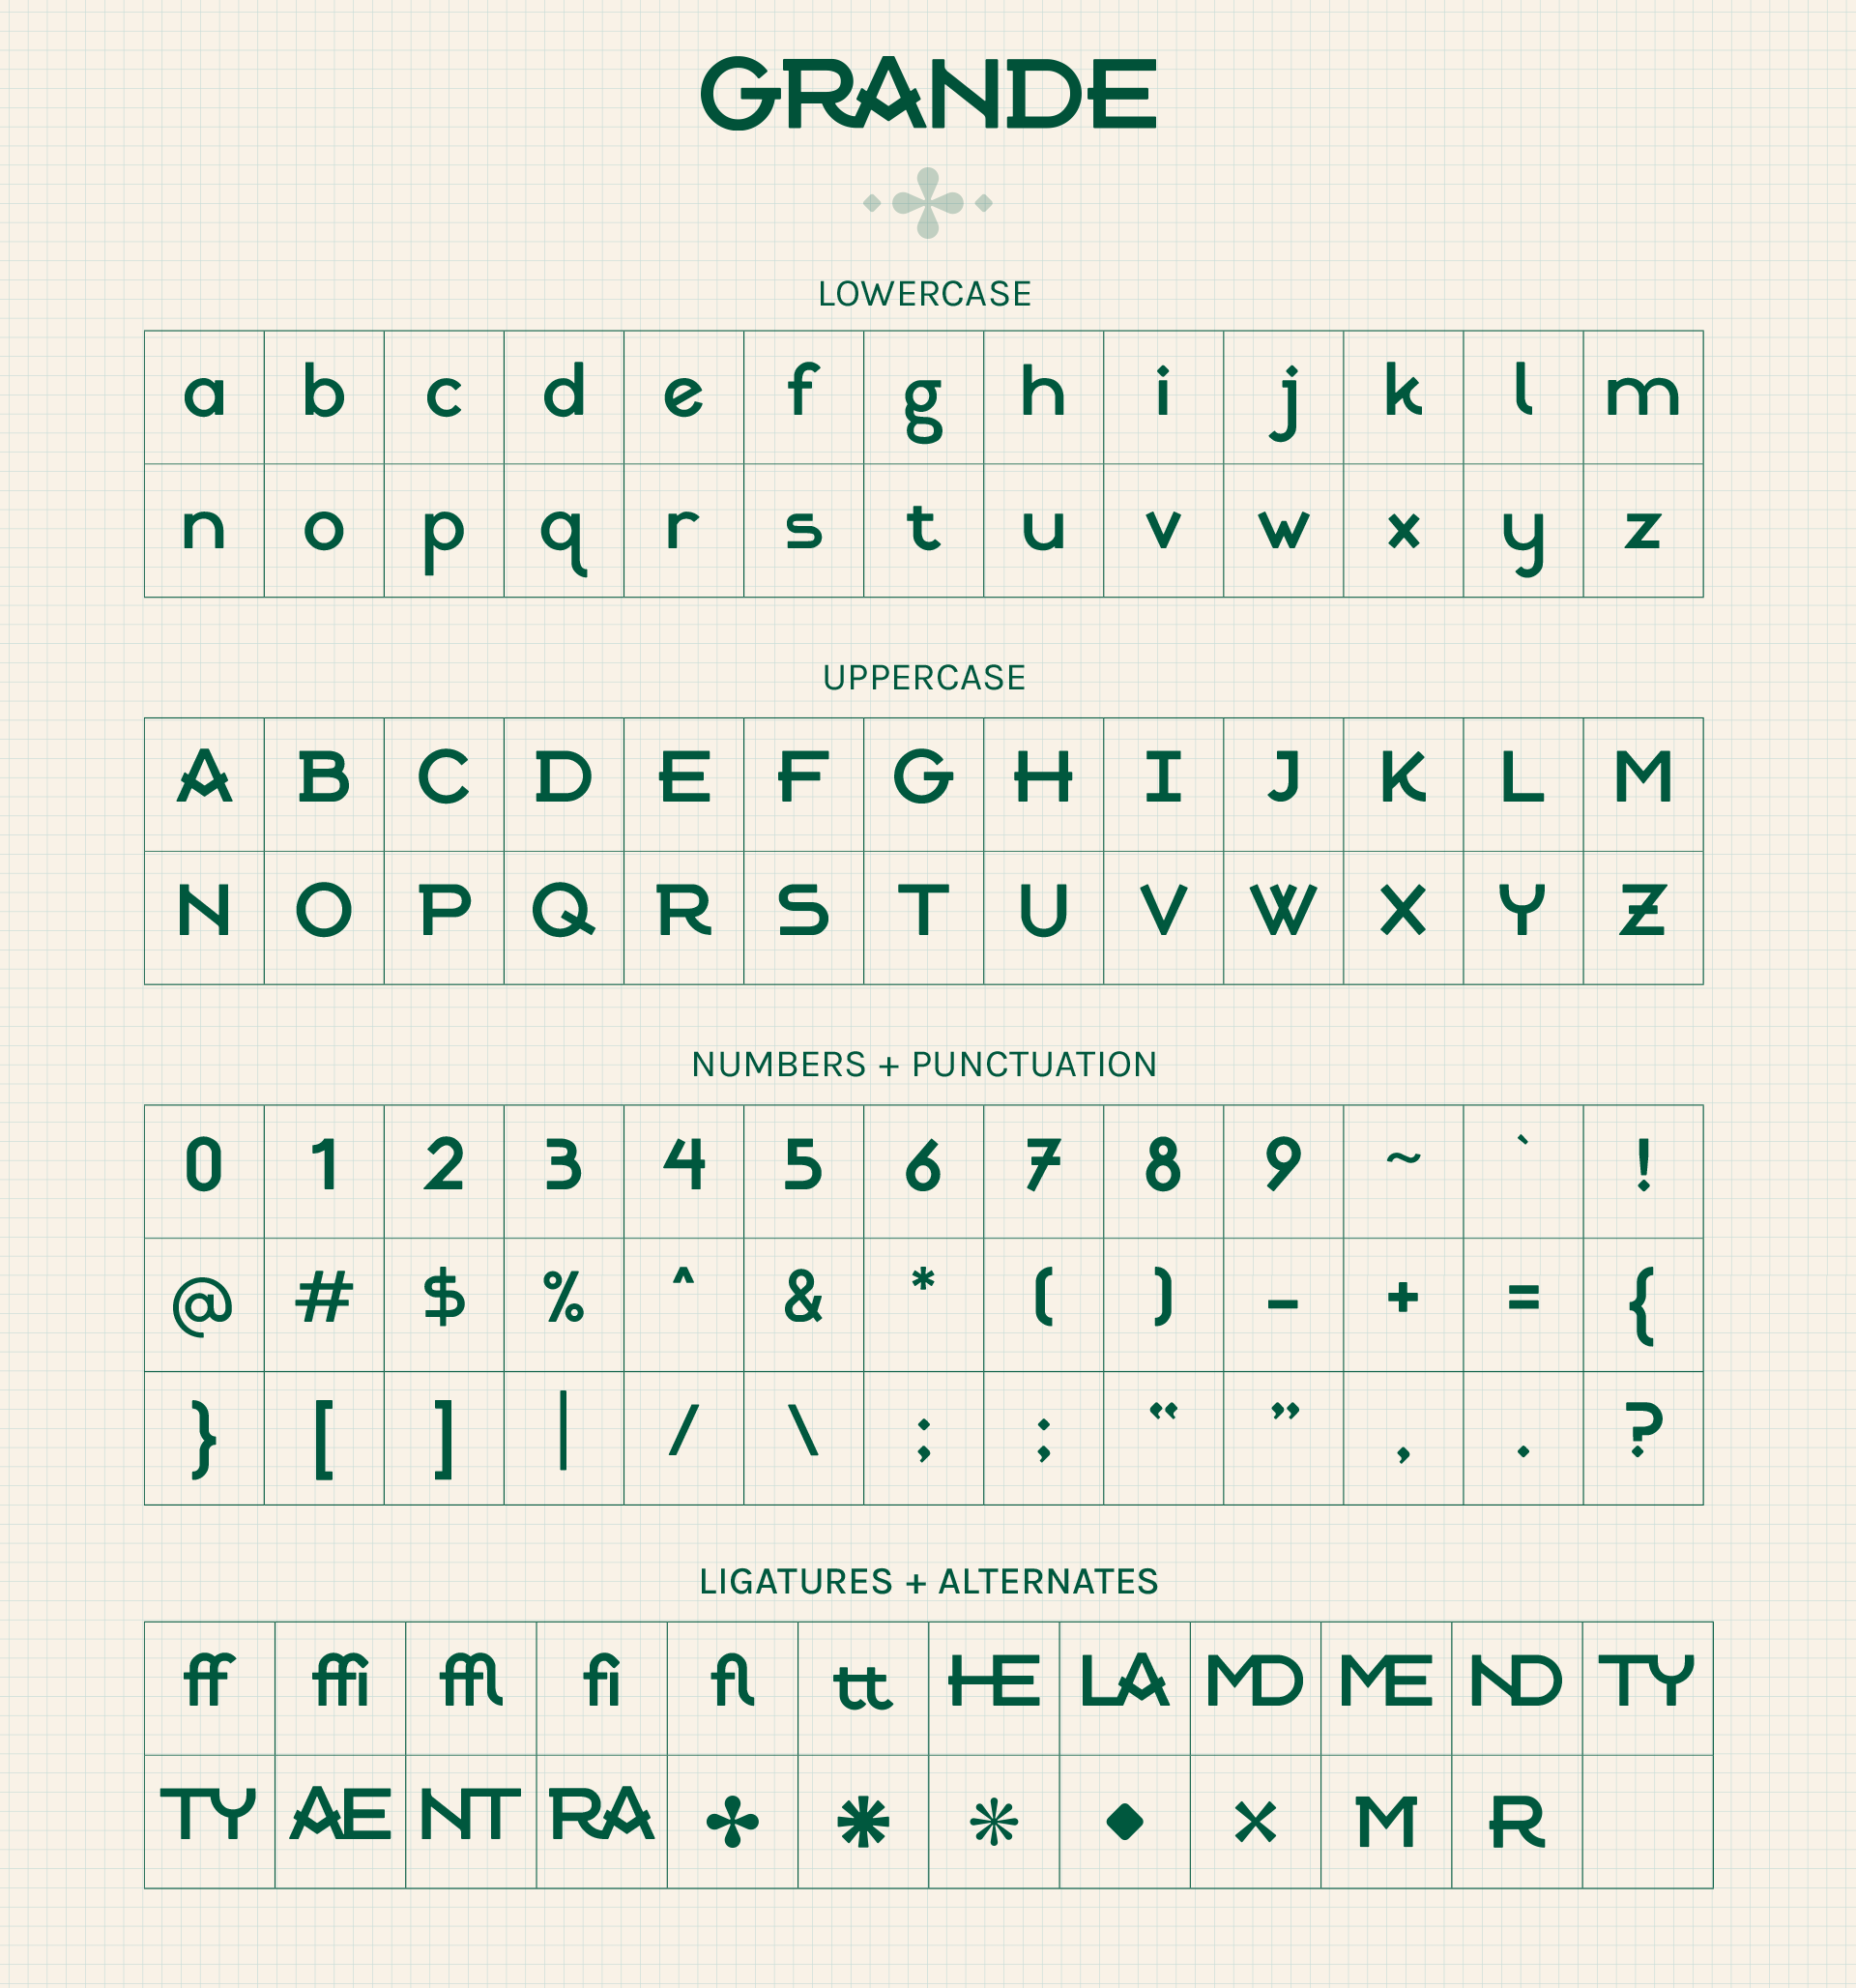 A graphic featuring all the glyphs of the typeface Grande.